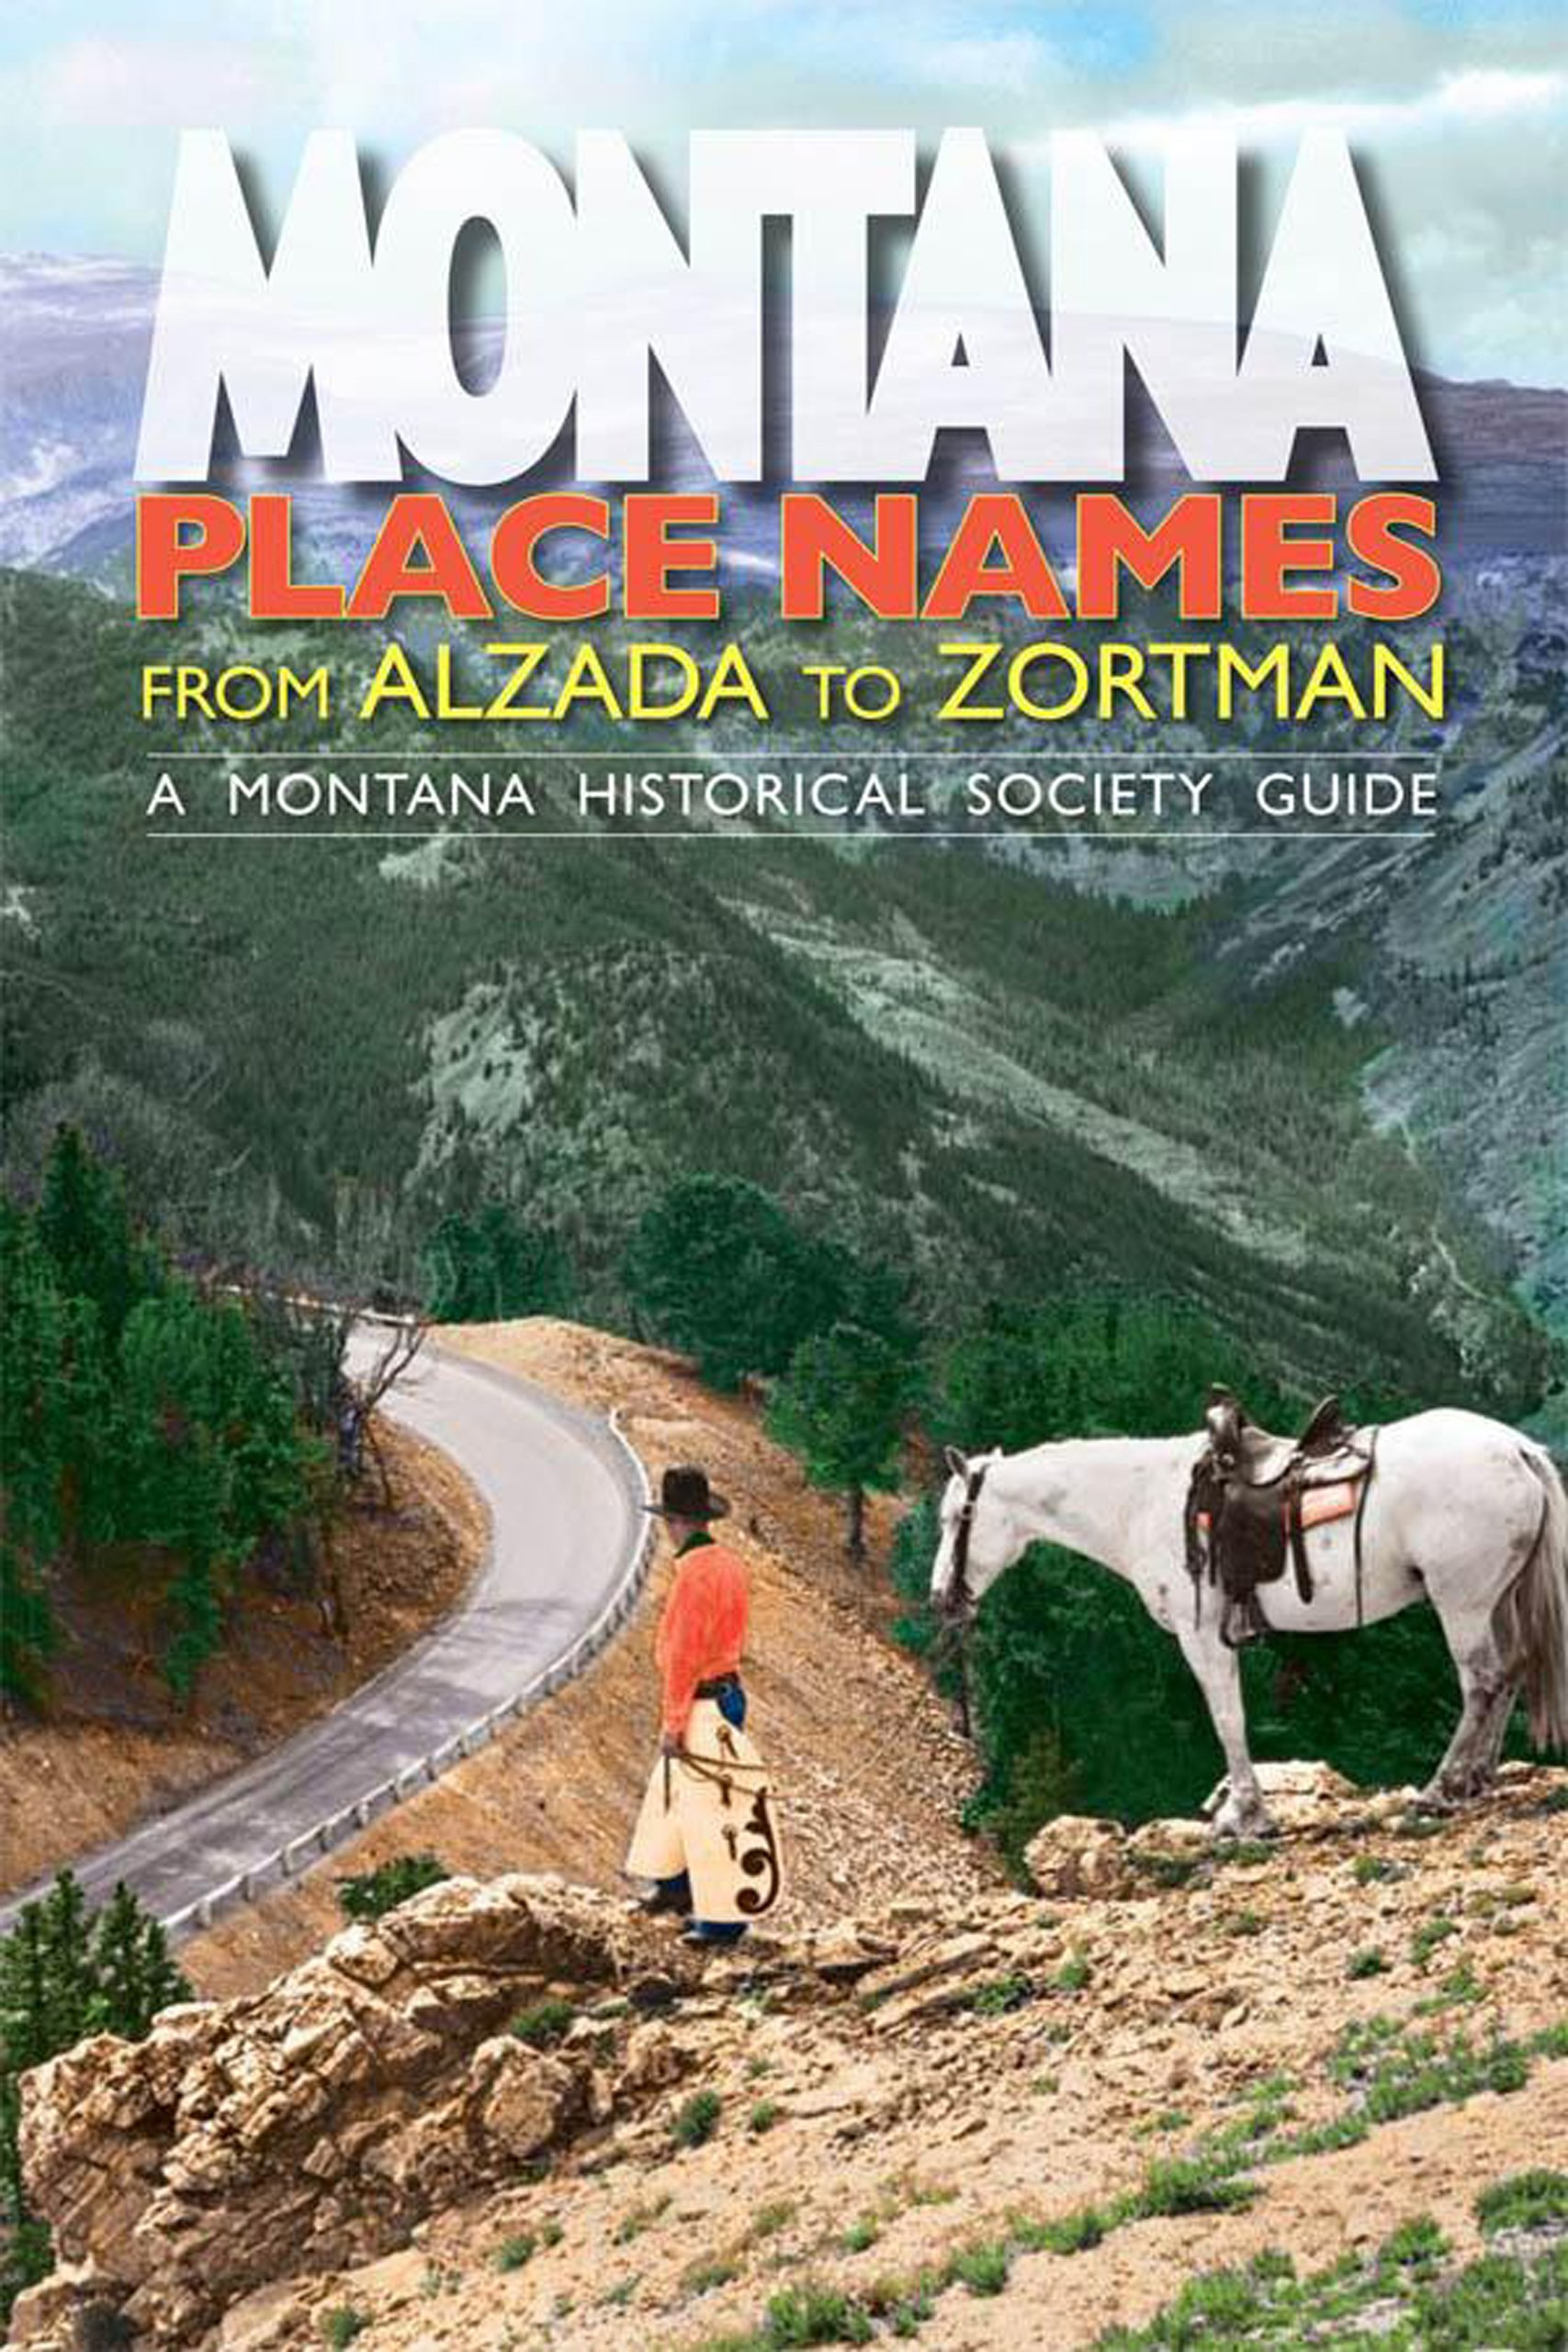 Montana Place Names: From Alzada To Zortman (Montana Historical Society Guide) pdf